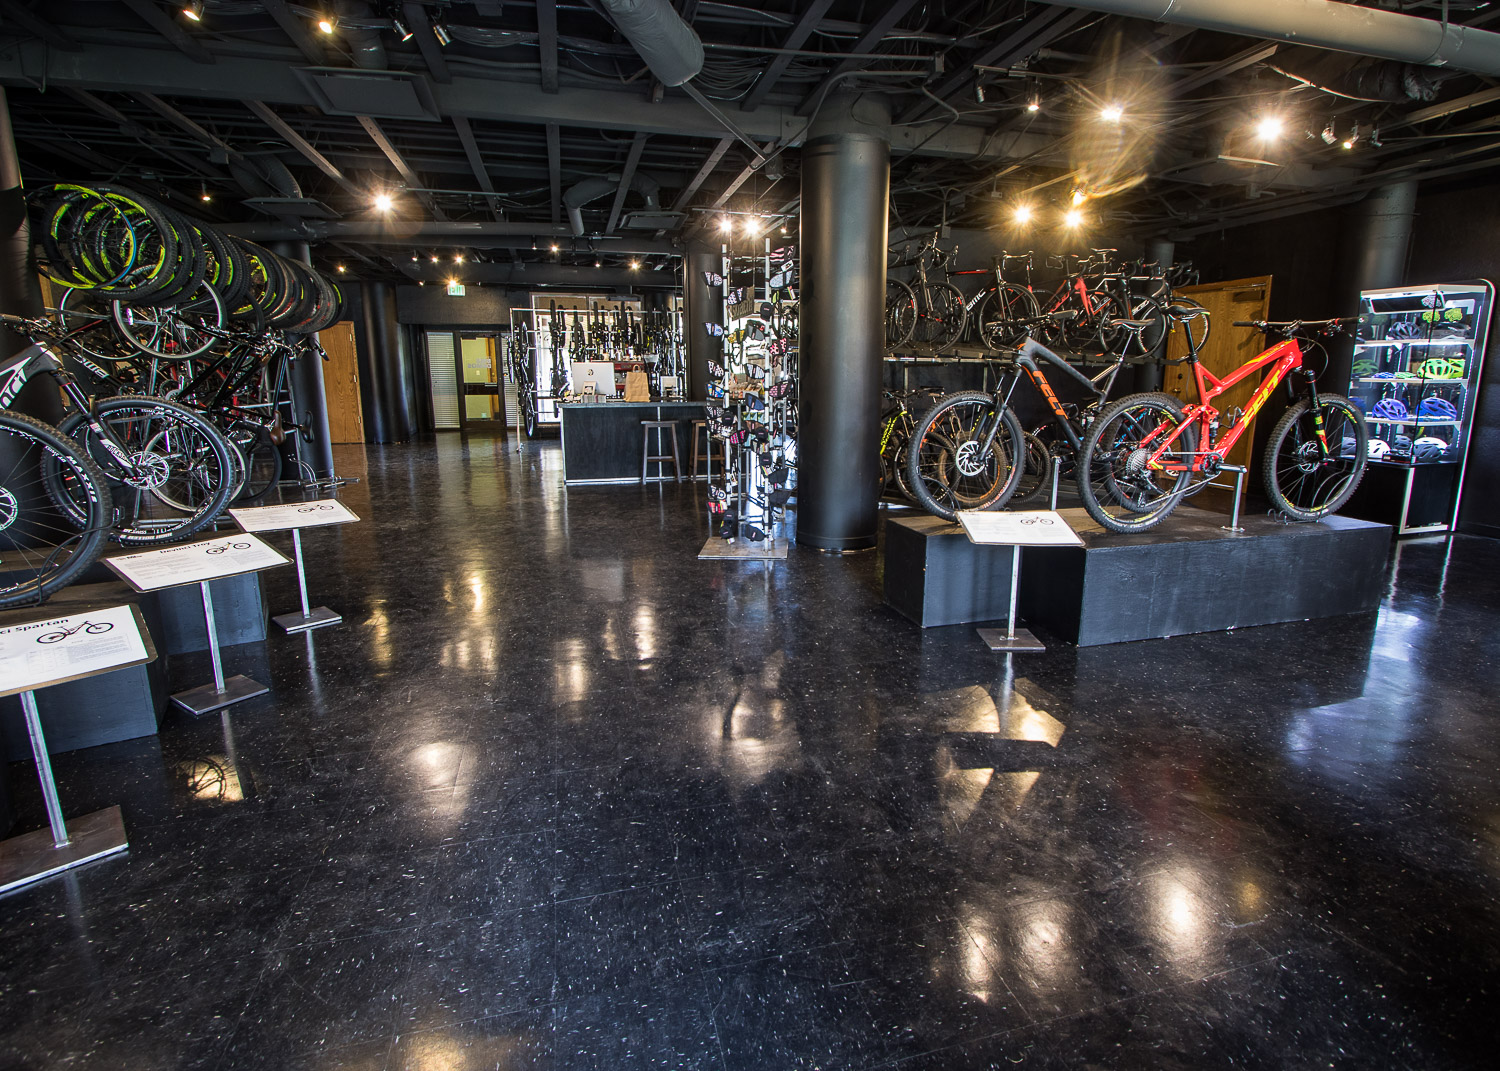 Park City Bike Demos sells demo and rental bikes to customers out of its 2,800 square-foot retail space. photo by John Shafer